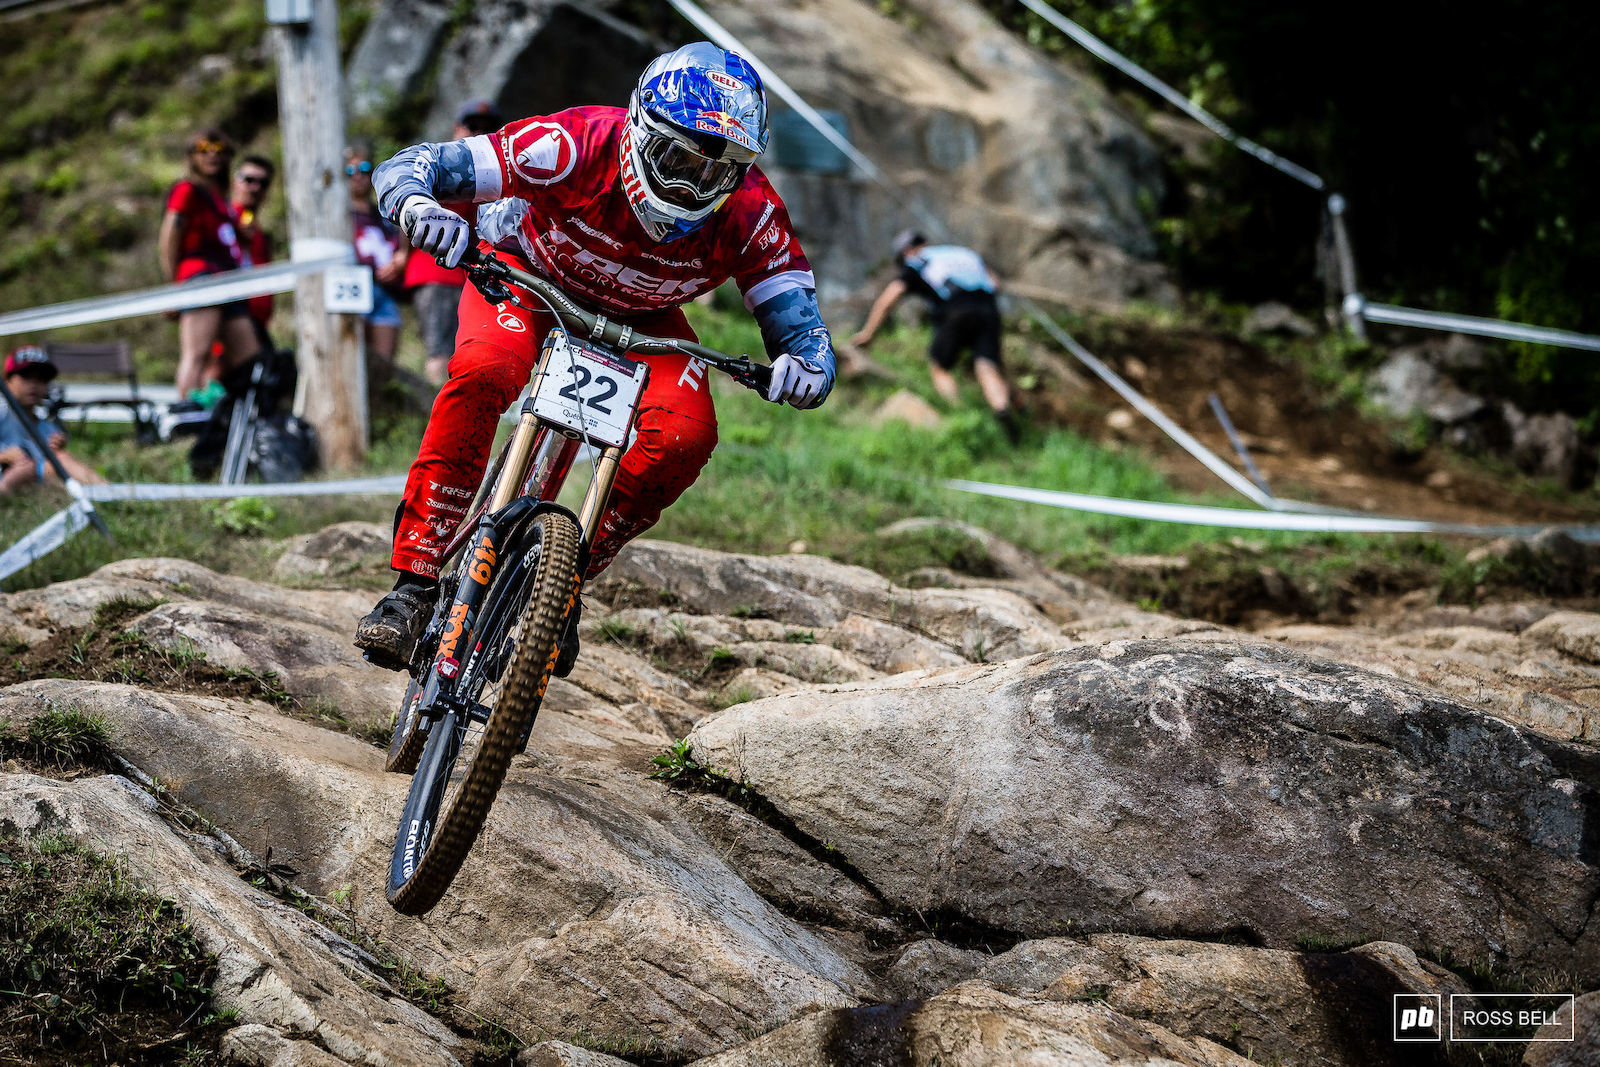 A strong showing for Gee Atherton in 8th although a little bit off the pace of the tightly bunched top 7.